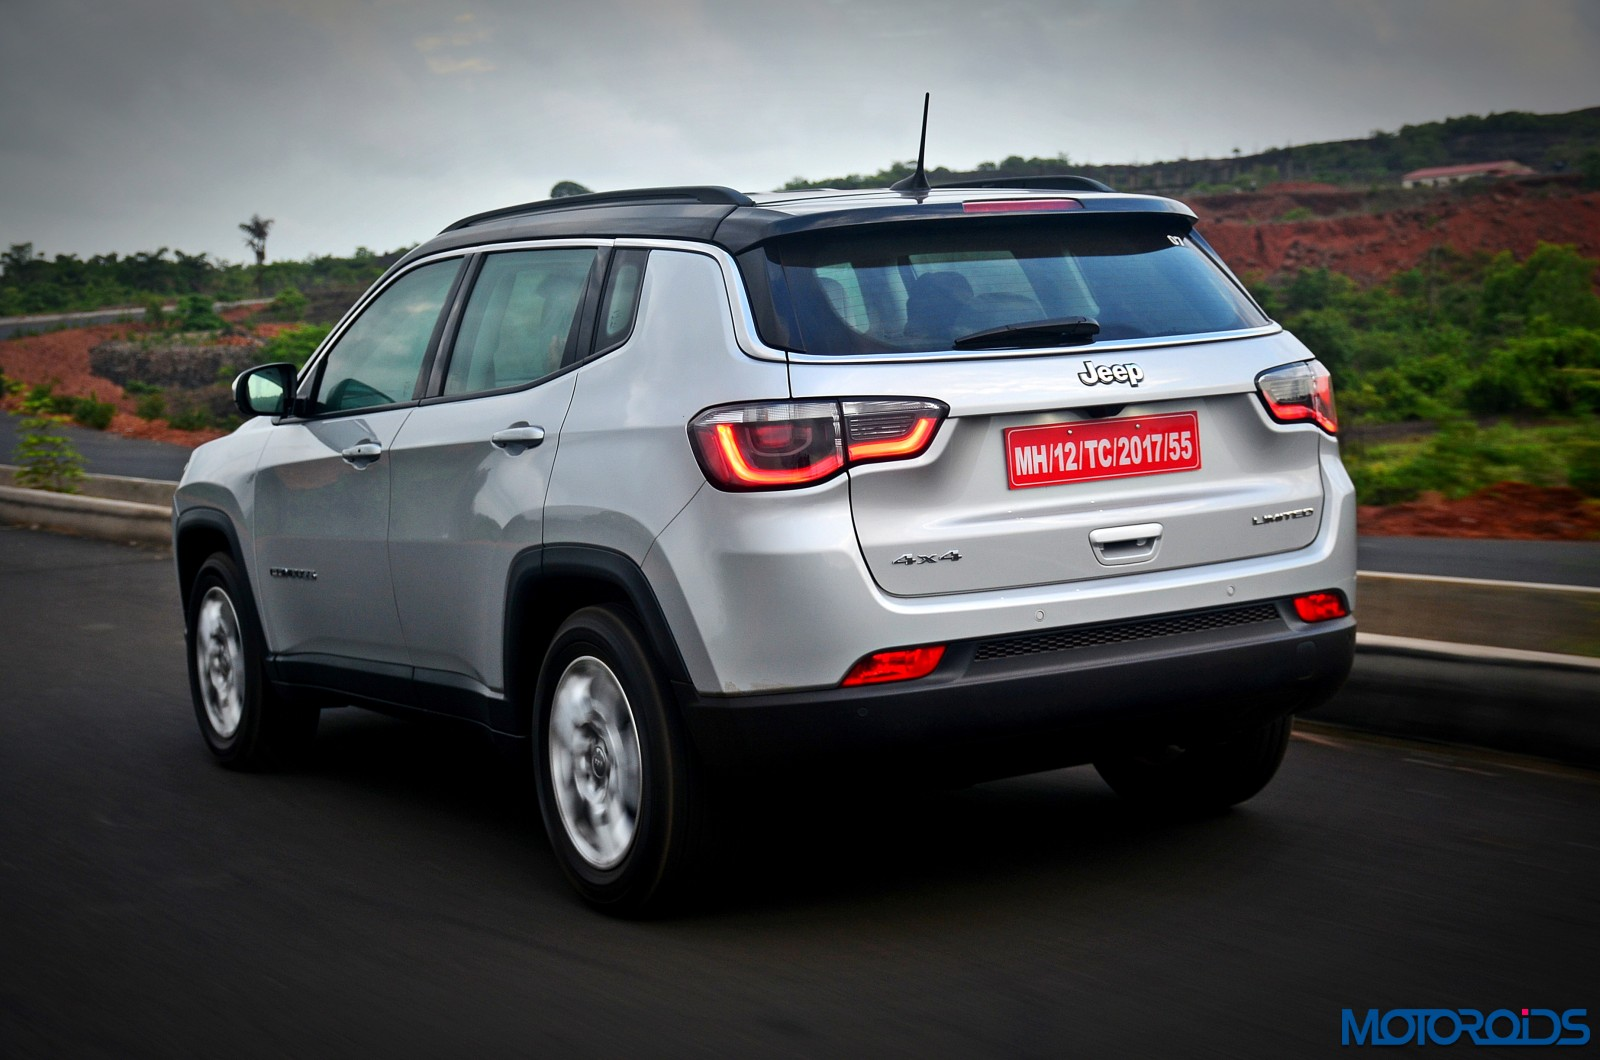 jeep compass india review price specs mileage image. Black Bedroom Furniture Sets. Home Design Ideas